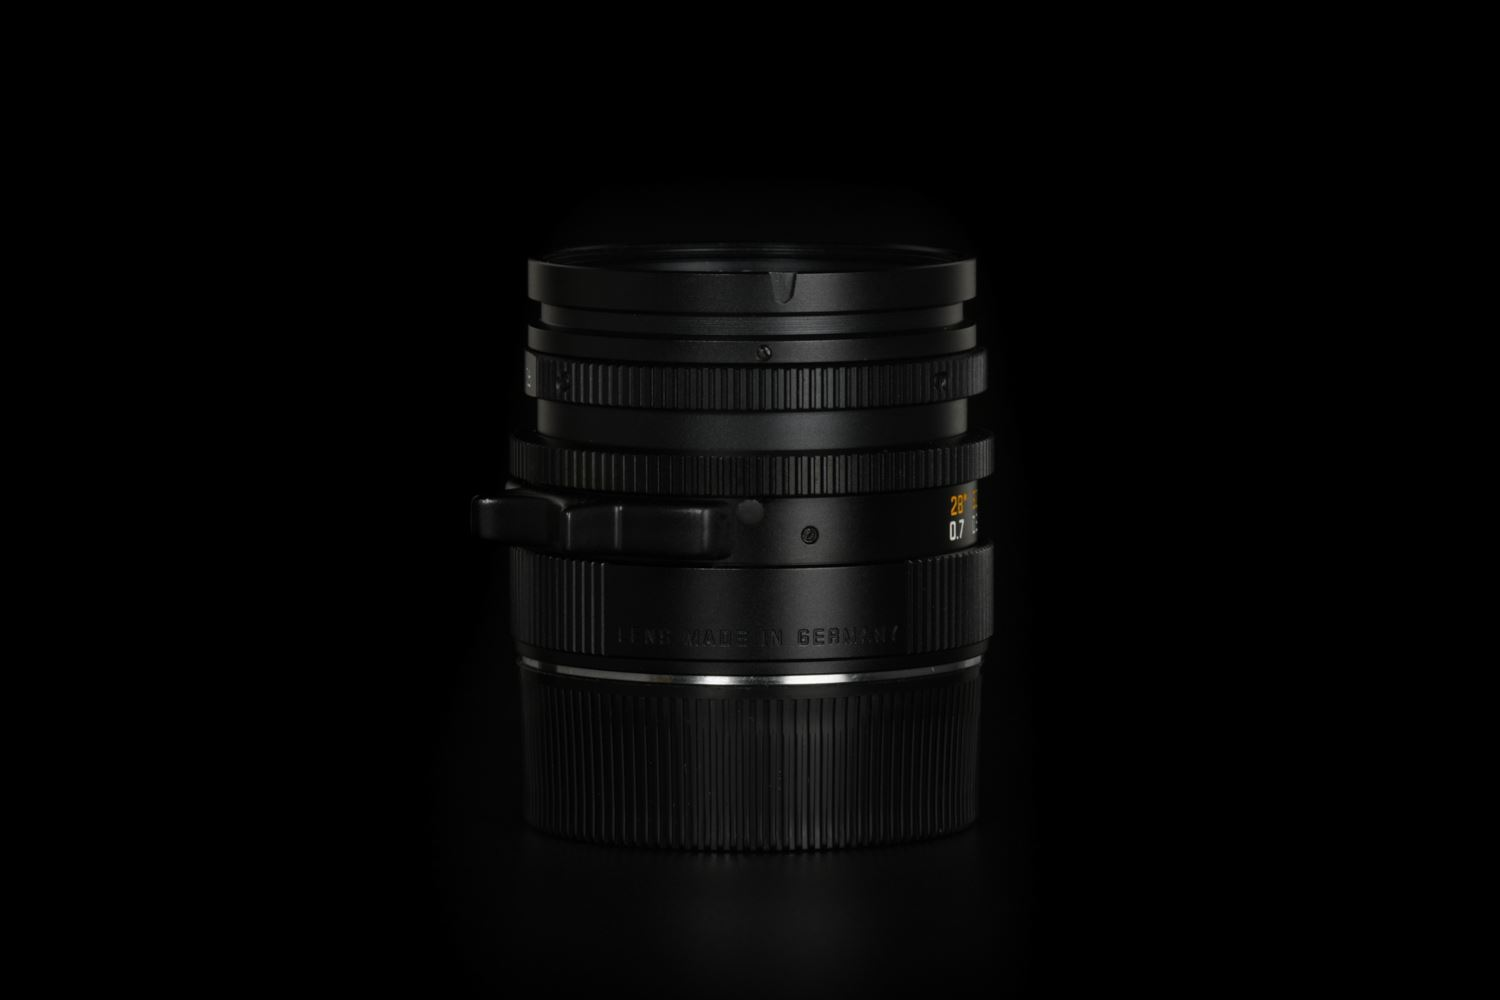 Picture of Leica Summilux-M 35mm f/1.4 ASPHERICAL Double ASPH AA